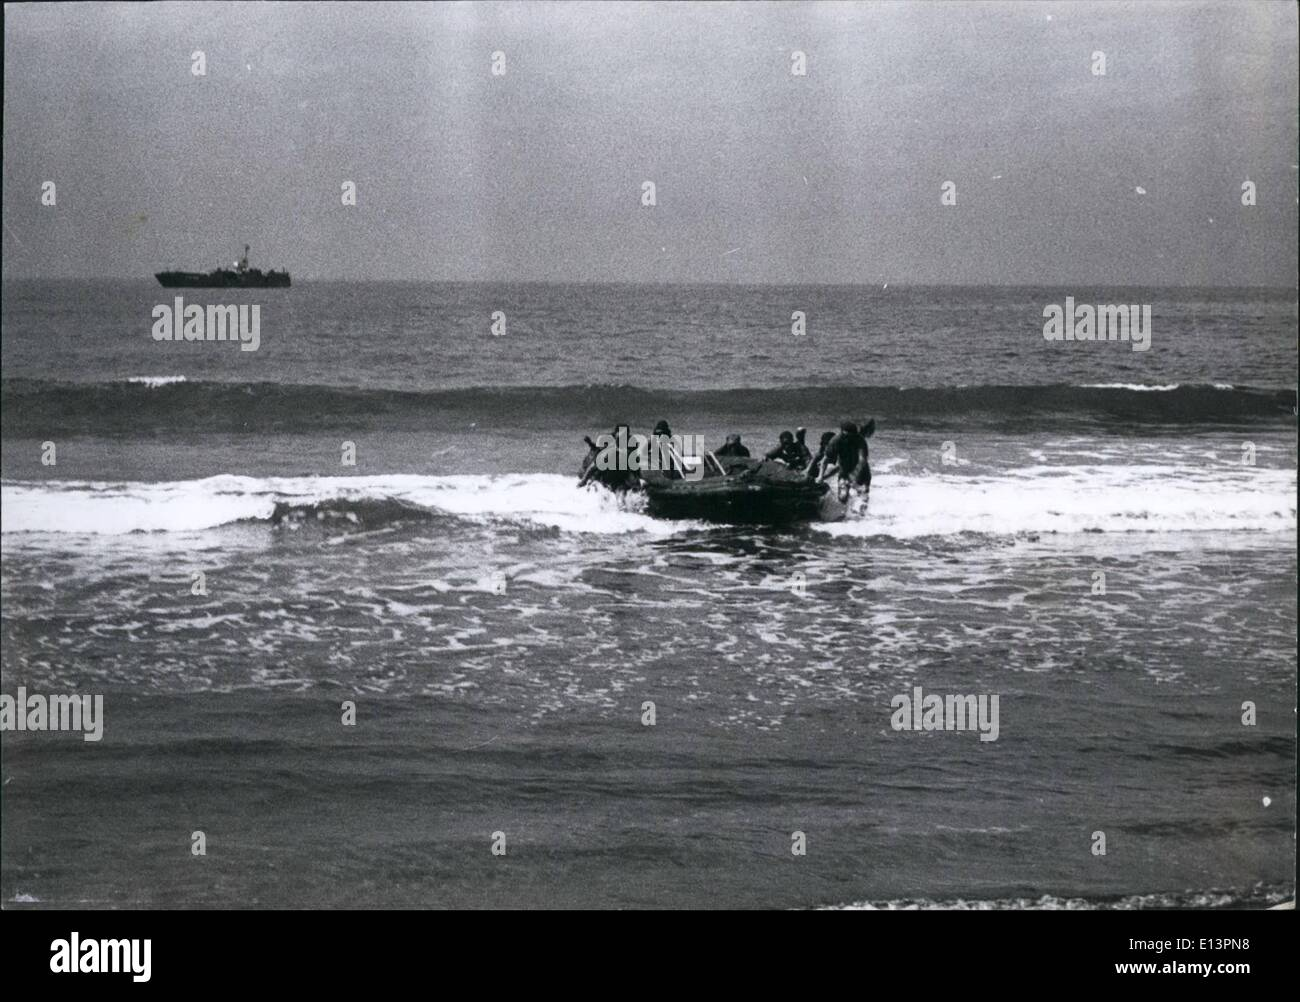 Mar. 22, 2012 - The frogmens assult is usually carried out on a dark moonless night, but for training purposes they carry out exercises in daylight. The frogmen are seen pulling their rubber raft ashore containing thier demolision explosives and arms. In the distance is the landing craft which has brought them near beach. - Stock Image